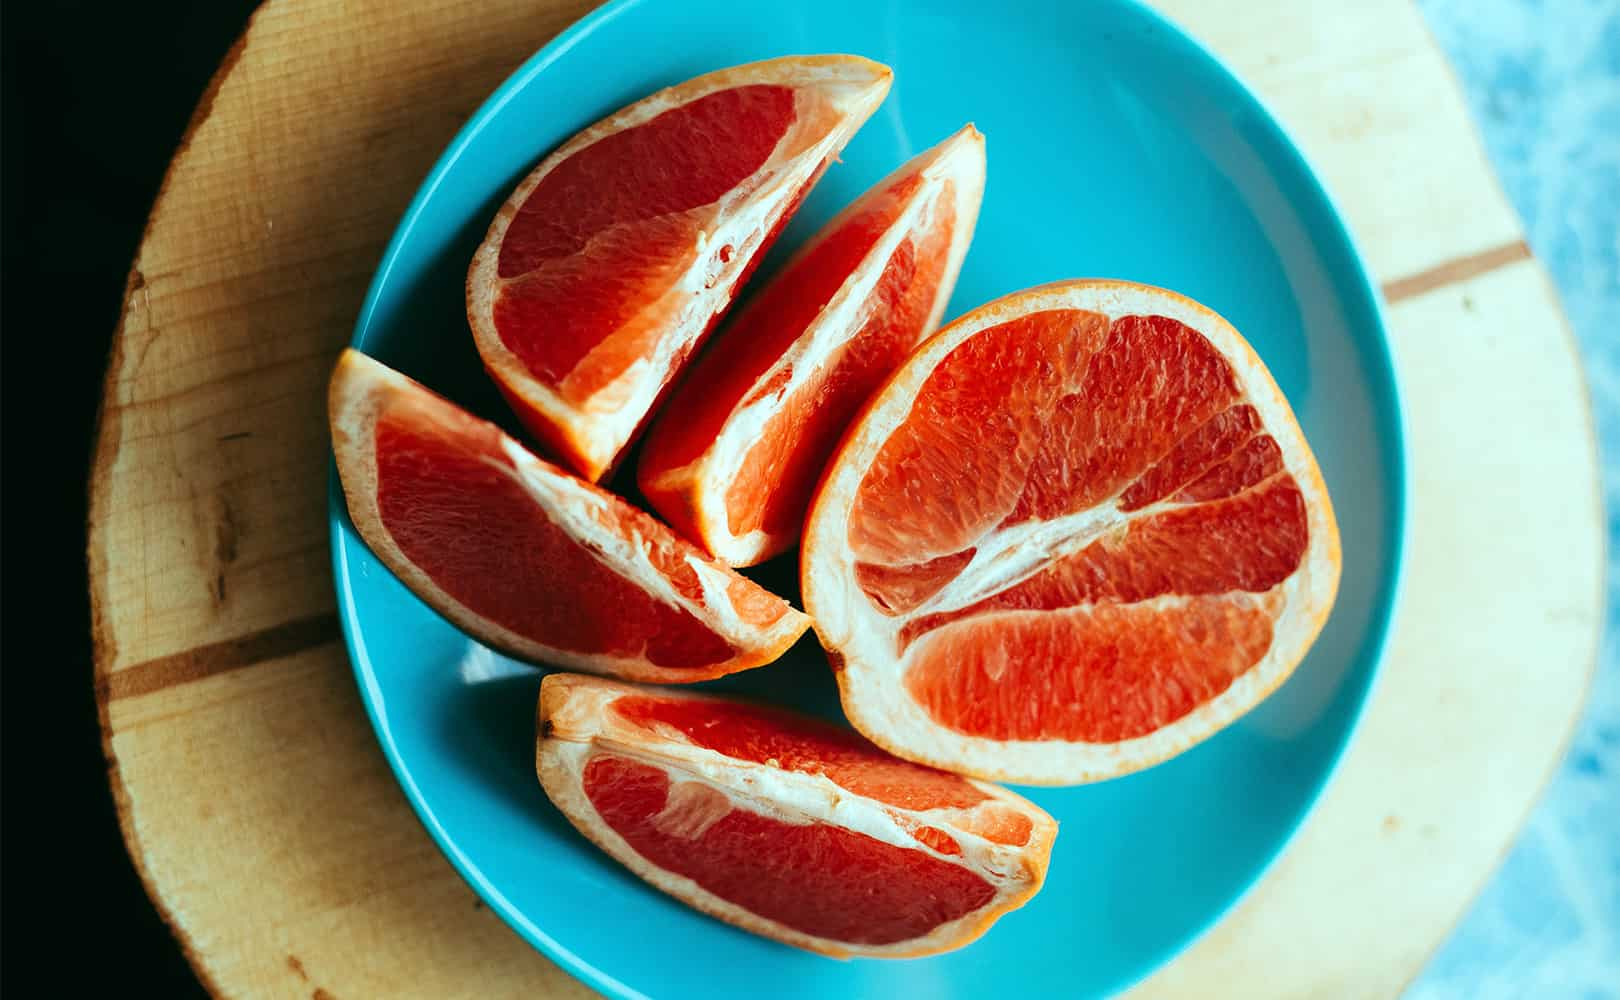 Sliced grapefruit on a blue plate, on a wooden table.